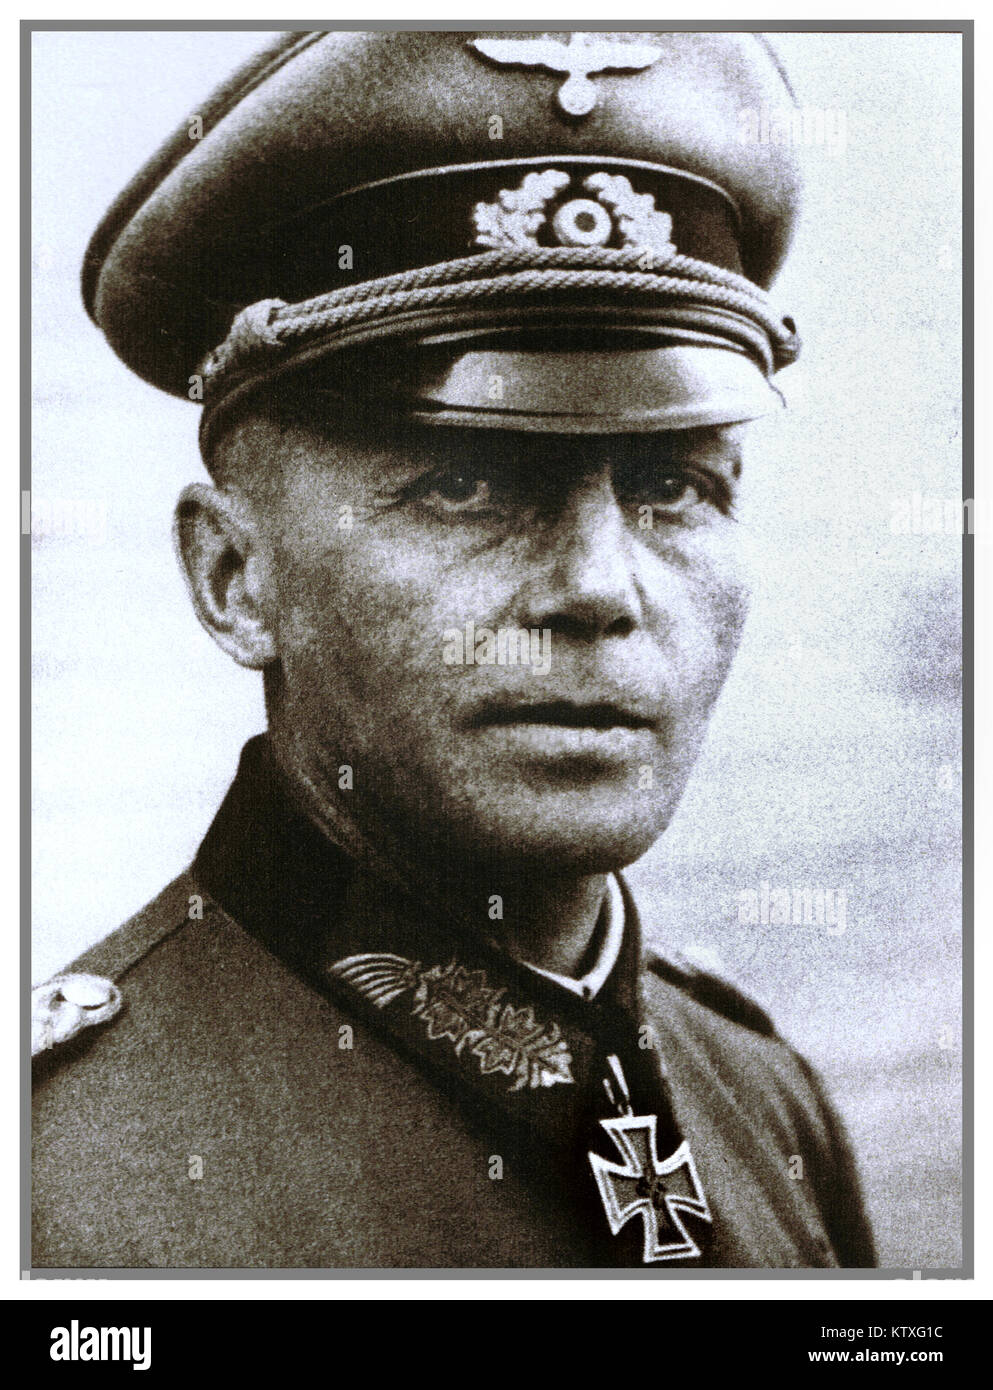 Karl von Graffen (6 June 1893 – 1 November 1964) was a German general during World War II who held divisional and - Stock Image